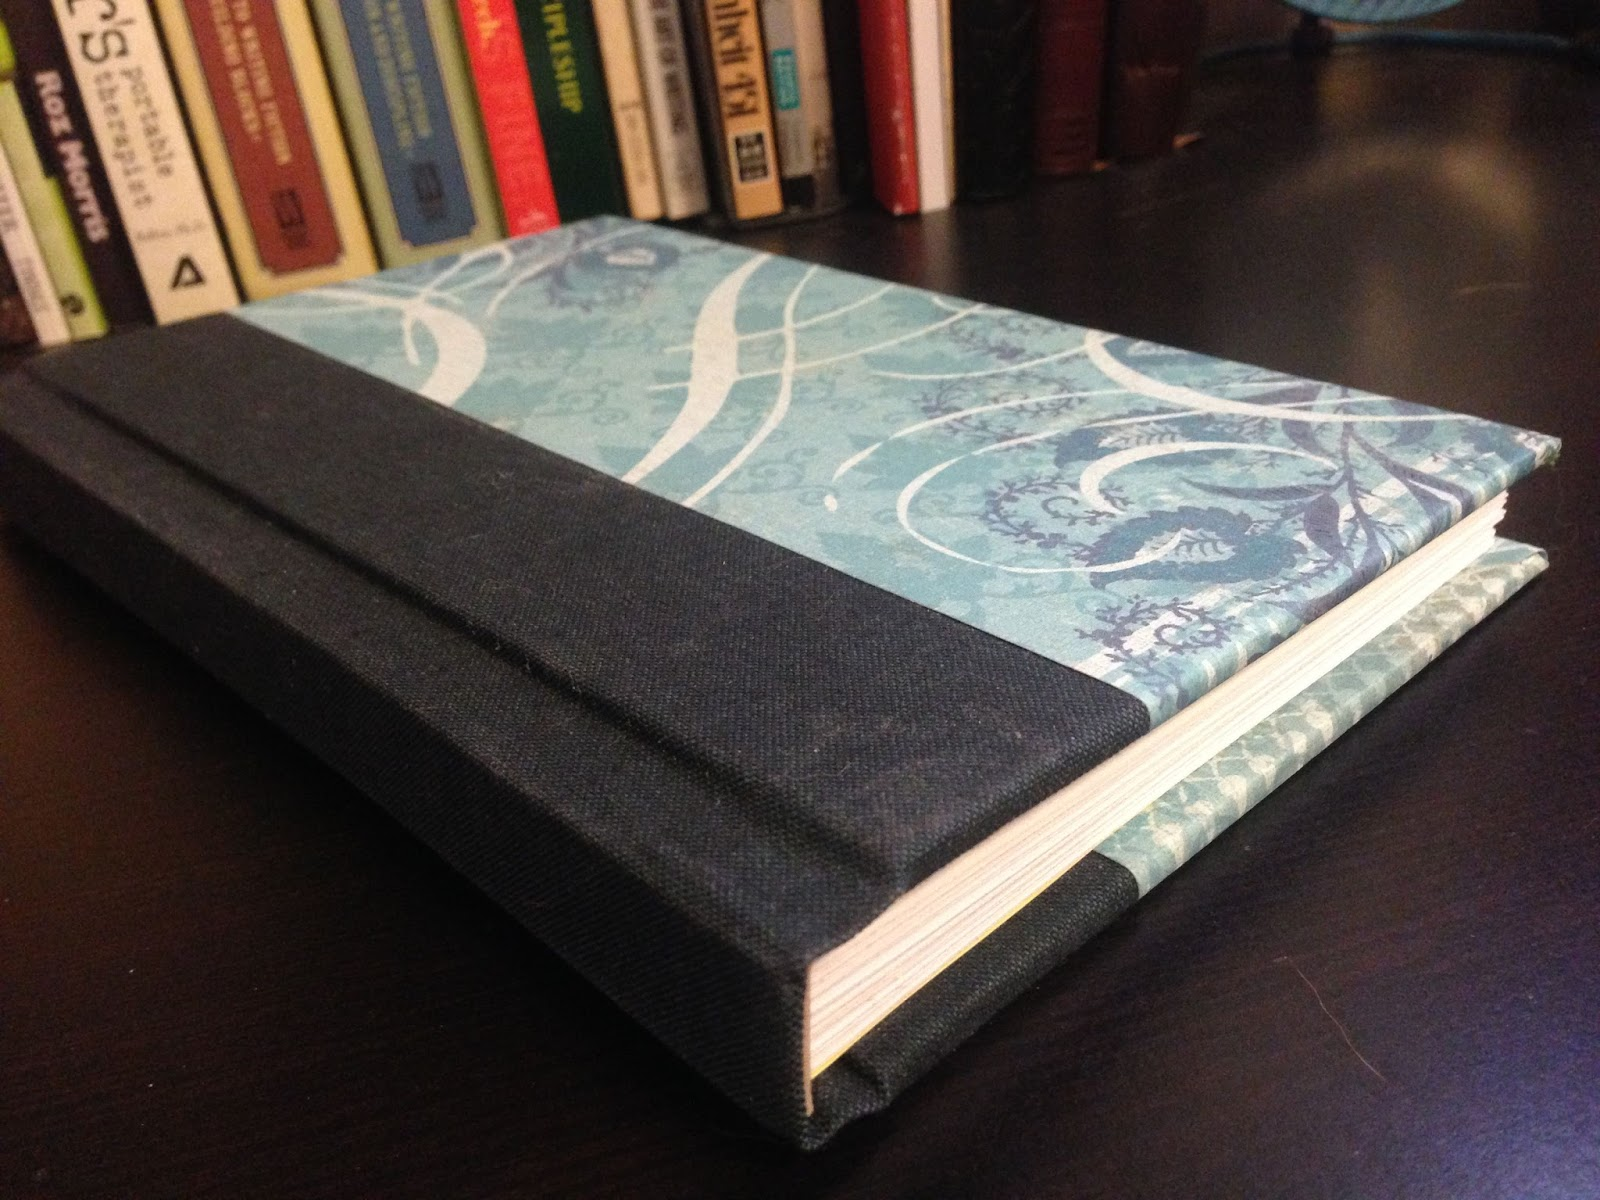 handbound journal with black spine and blue pattern print cover on black table next to bookshelf